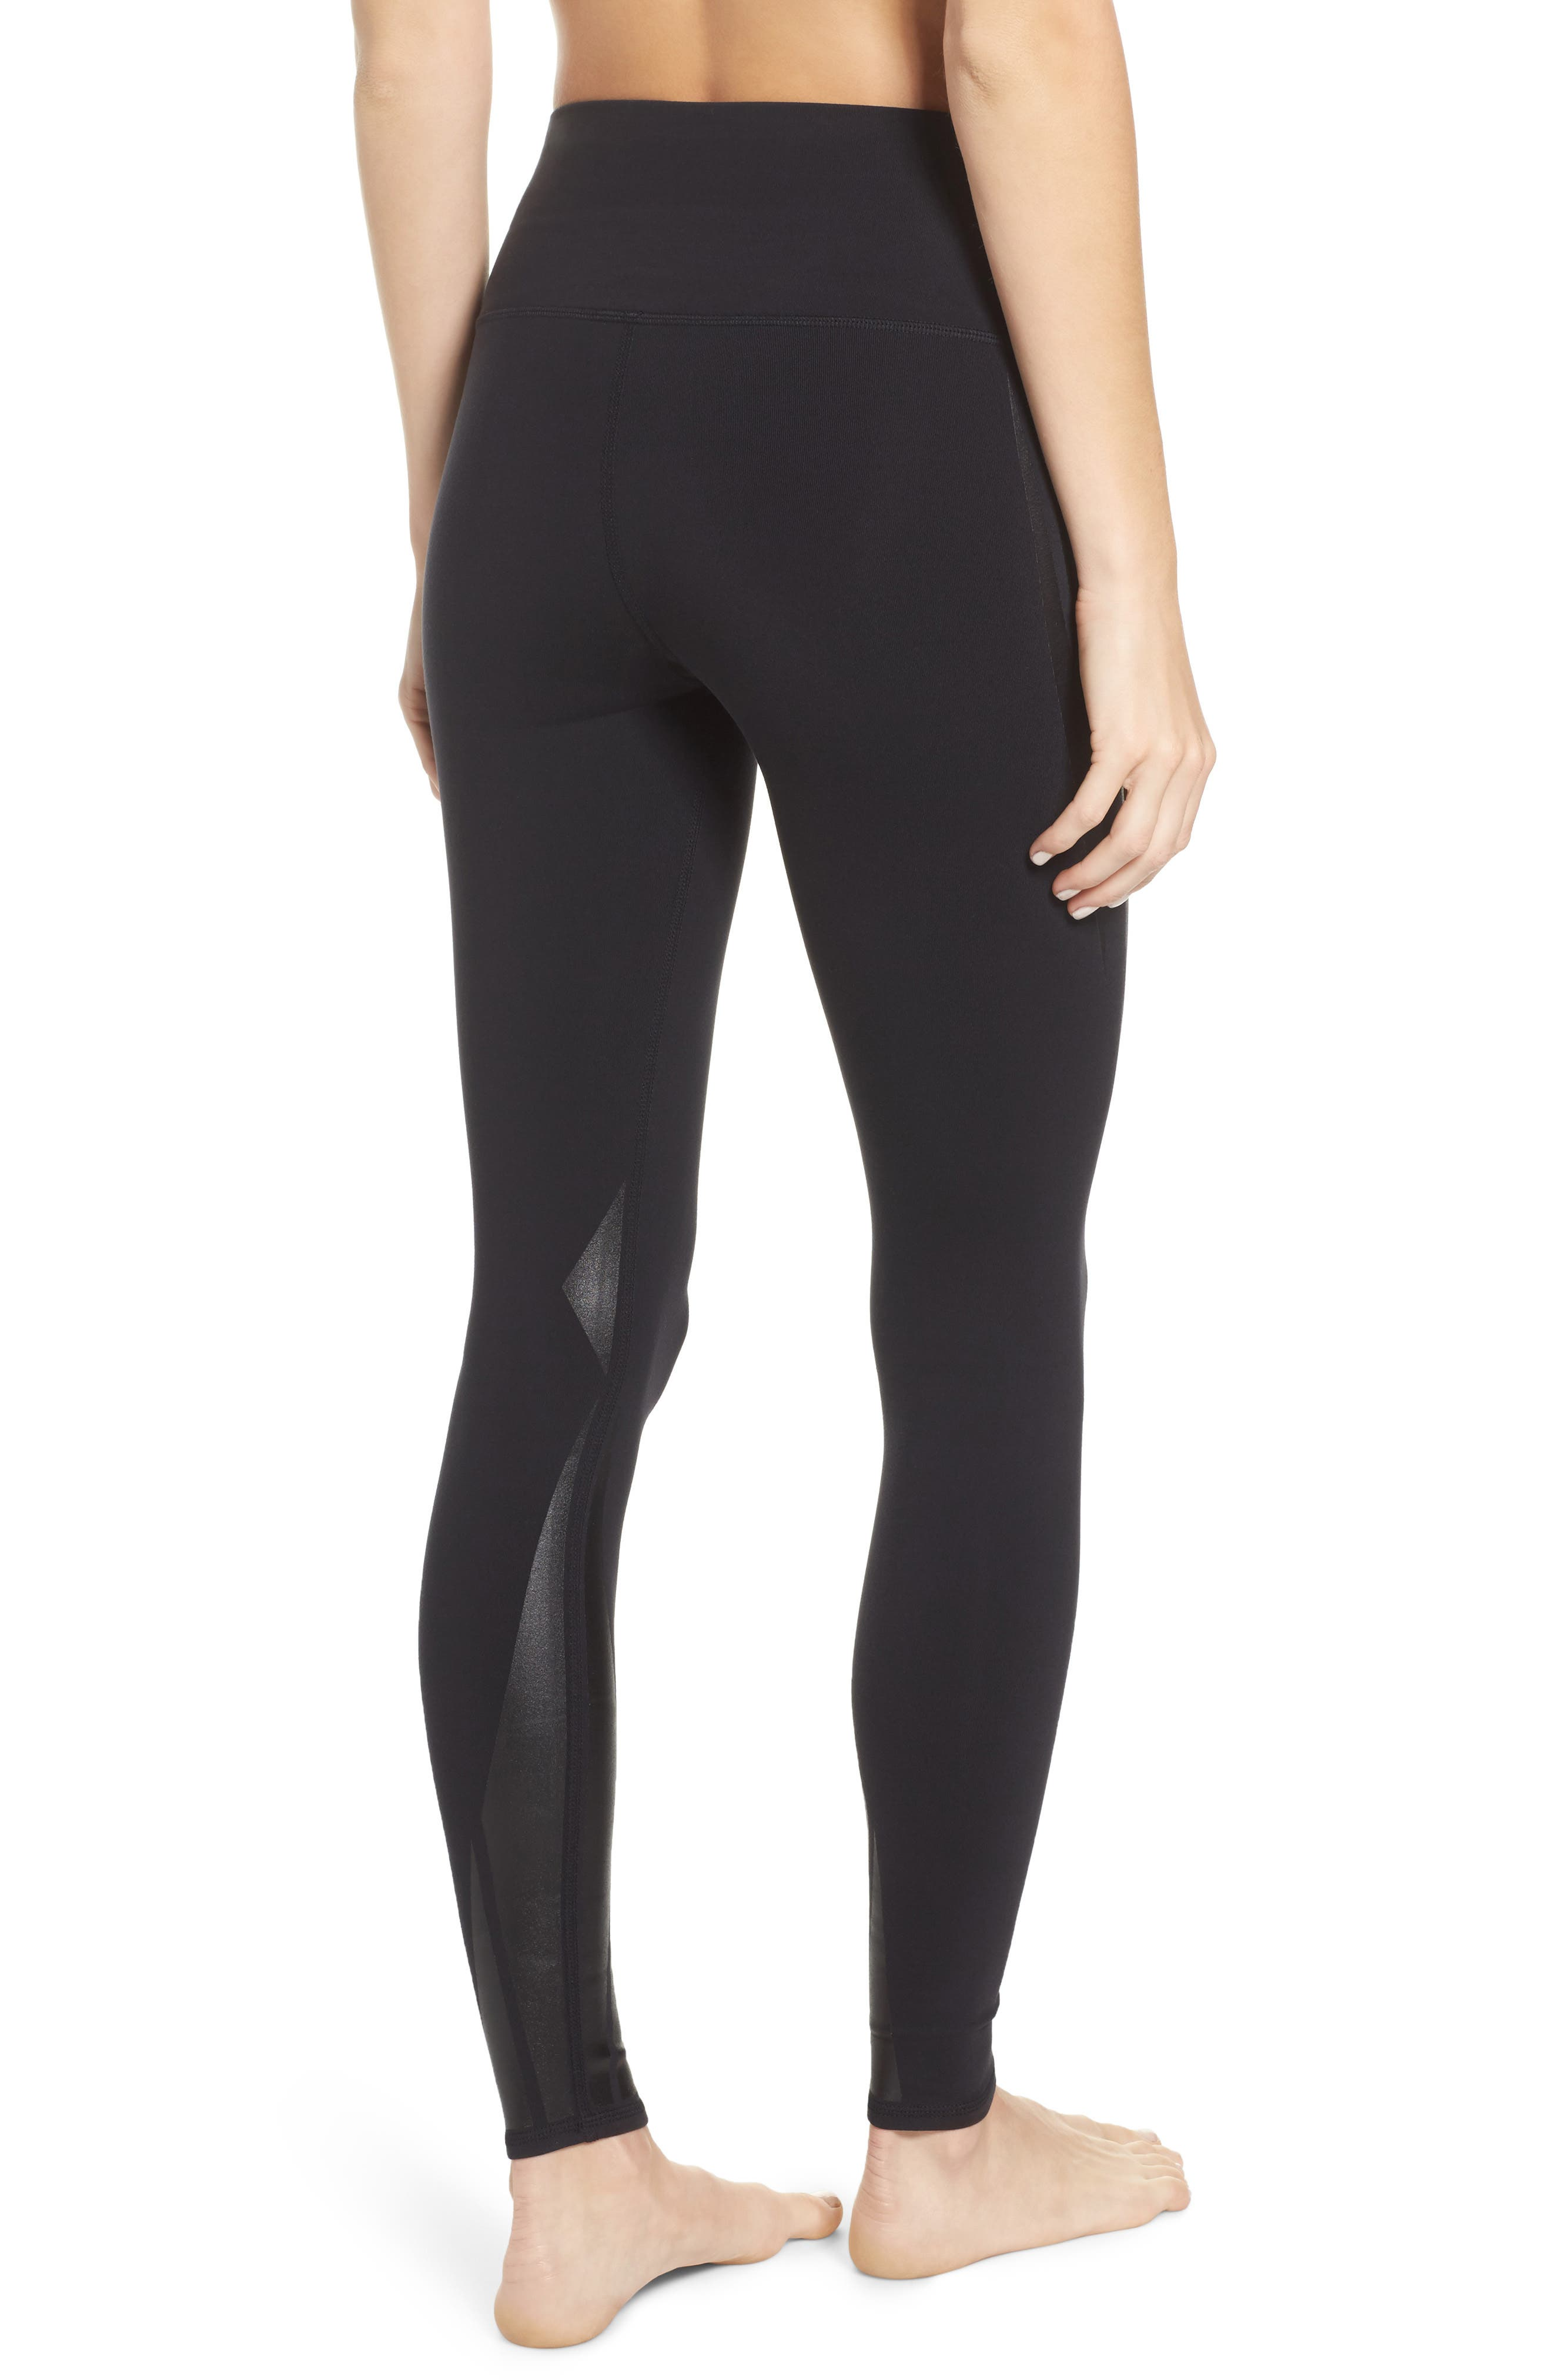 Airbrush High Waist Leggings,                             Alternate thumbnail 2, color,                             011